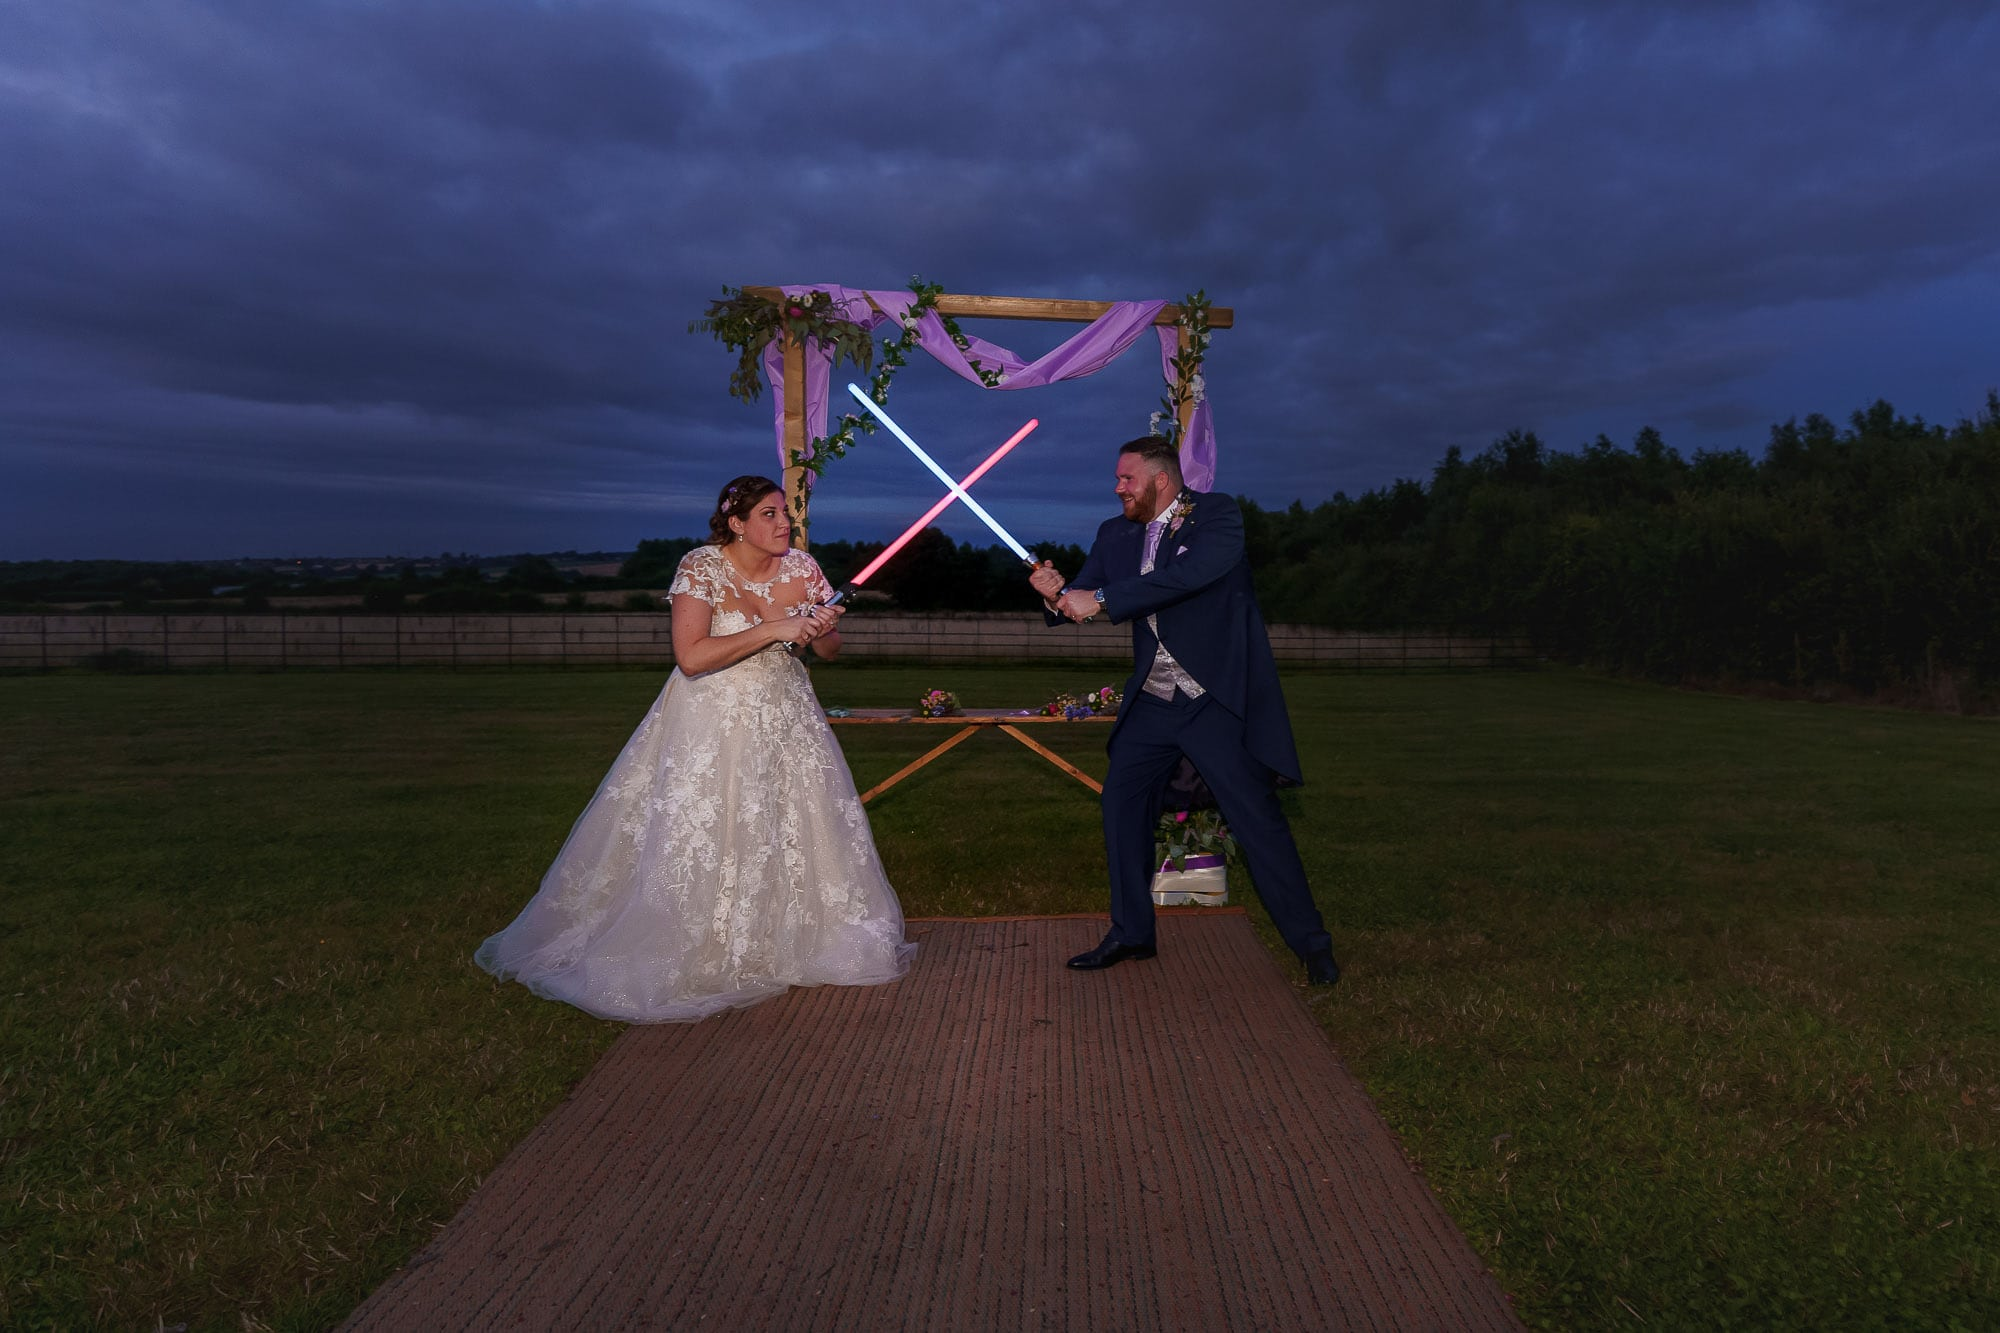 bride and groom with light sabers on wedding day